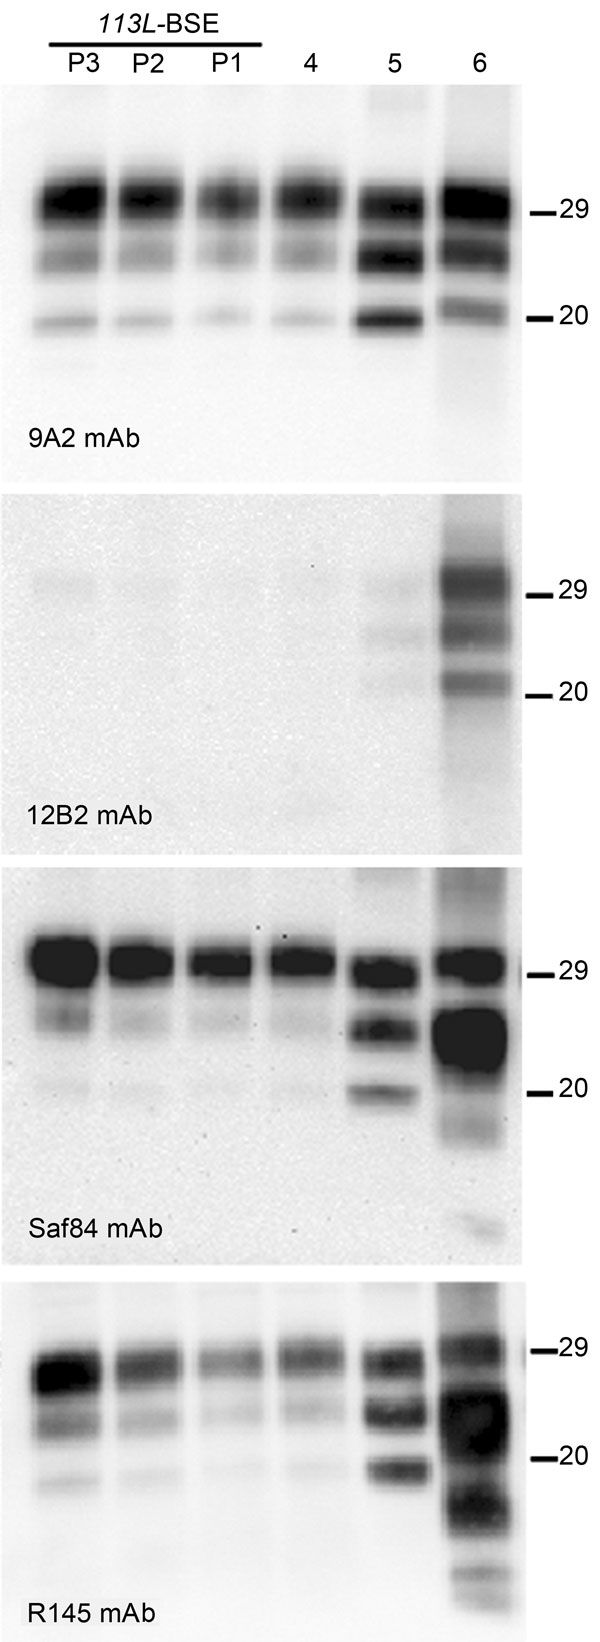 Comparative Western blot analyses of brain prion protein resistant to proteinase K digestion (PrPres) from BoPrP-Tg110 mice infected with bovine spongiform encephalopathy (BSE)-C, 113L-BSE, BSE-L, and BSE-H prions. Mice infected with newly generated 113L-BSE prion at first (P1), second (P2), and third (P3) passages are compared with mice infected with BSE-C (P1) (lane 4); BSE-L (P1) (lane 5); and BSE-H (P1) (lane 6) prions. Each panel was identified by using the monoclonal antibody (mAb) listed